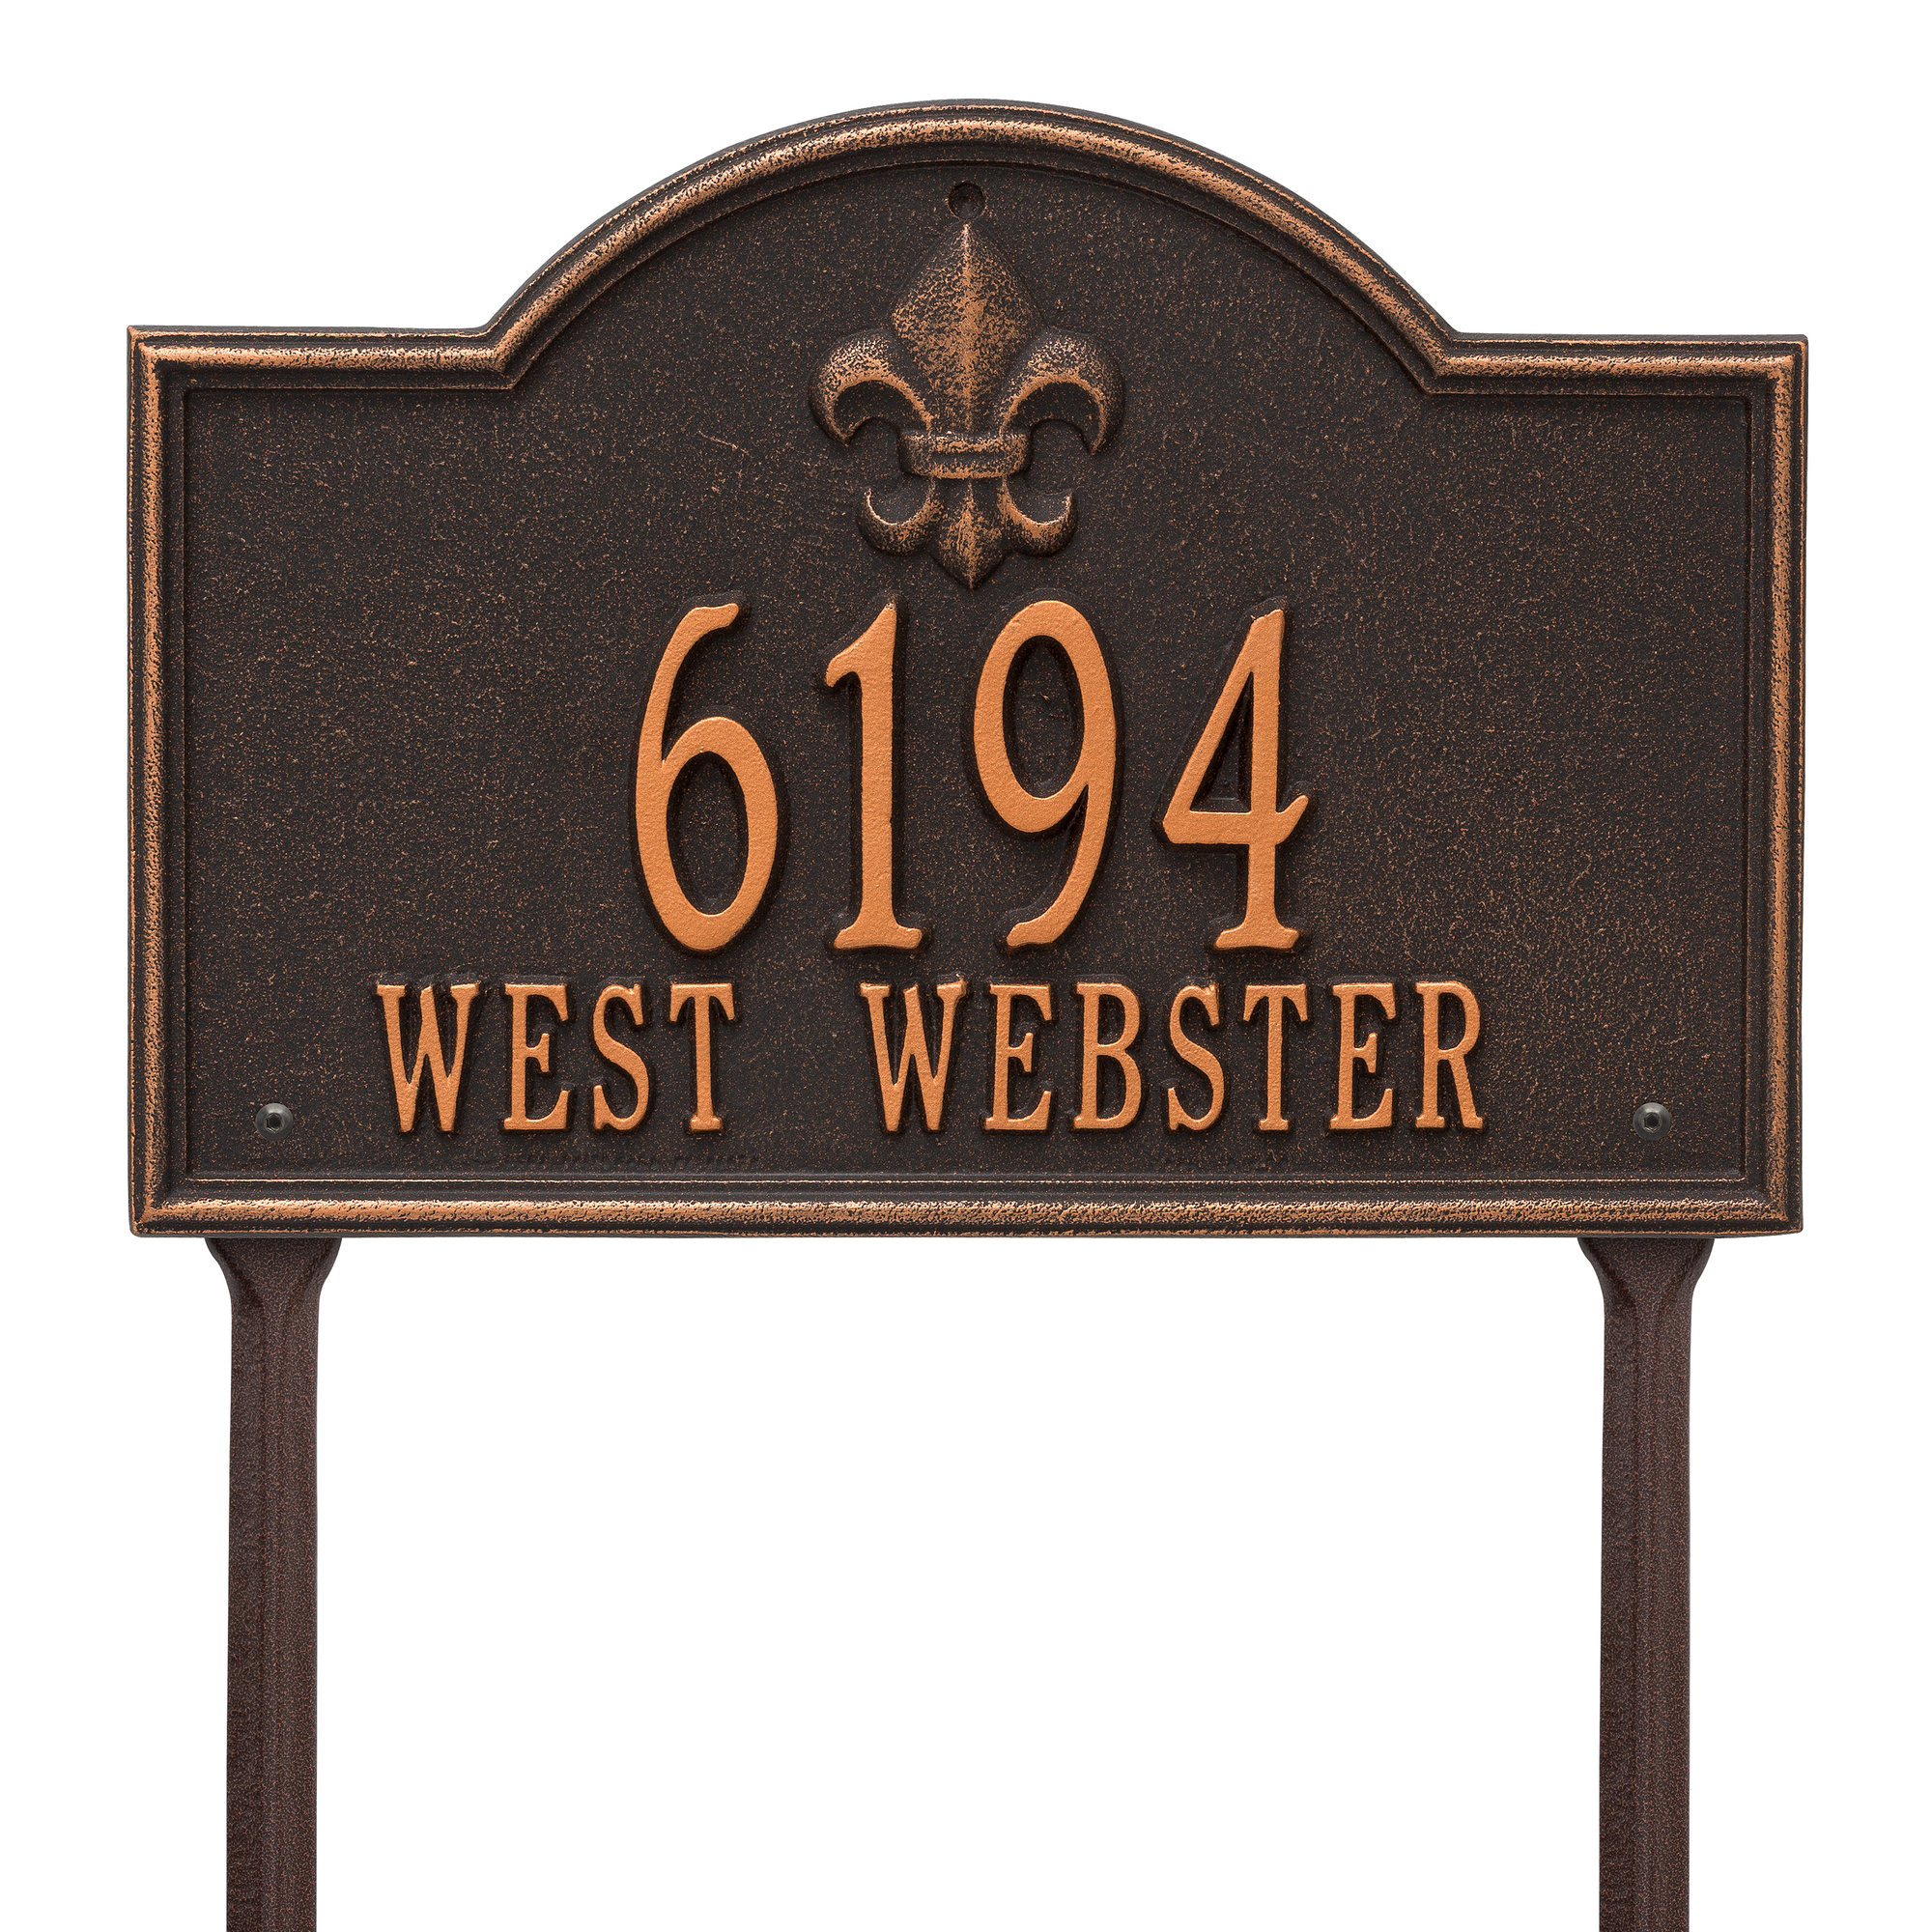 Personalized Whitehall Products Bayou Vista Standard Lawn House Numbers Plaque in Oil Rubbed Bronze